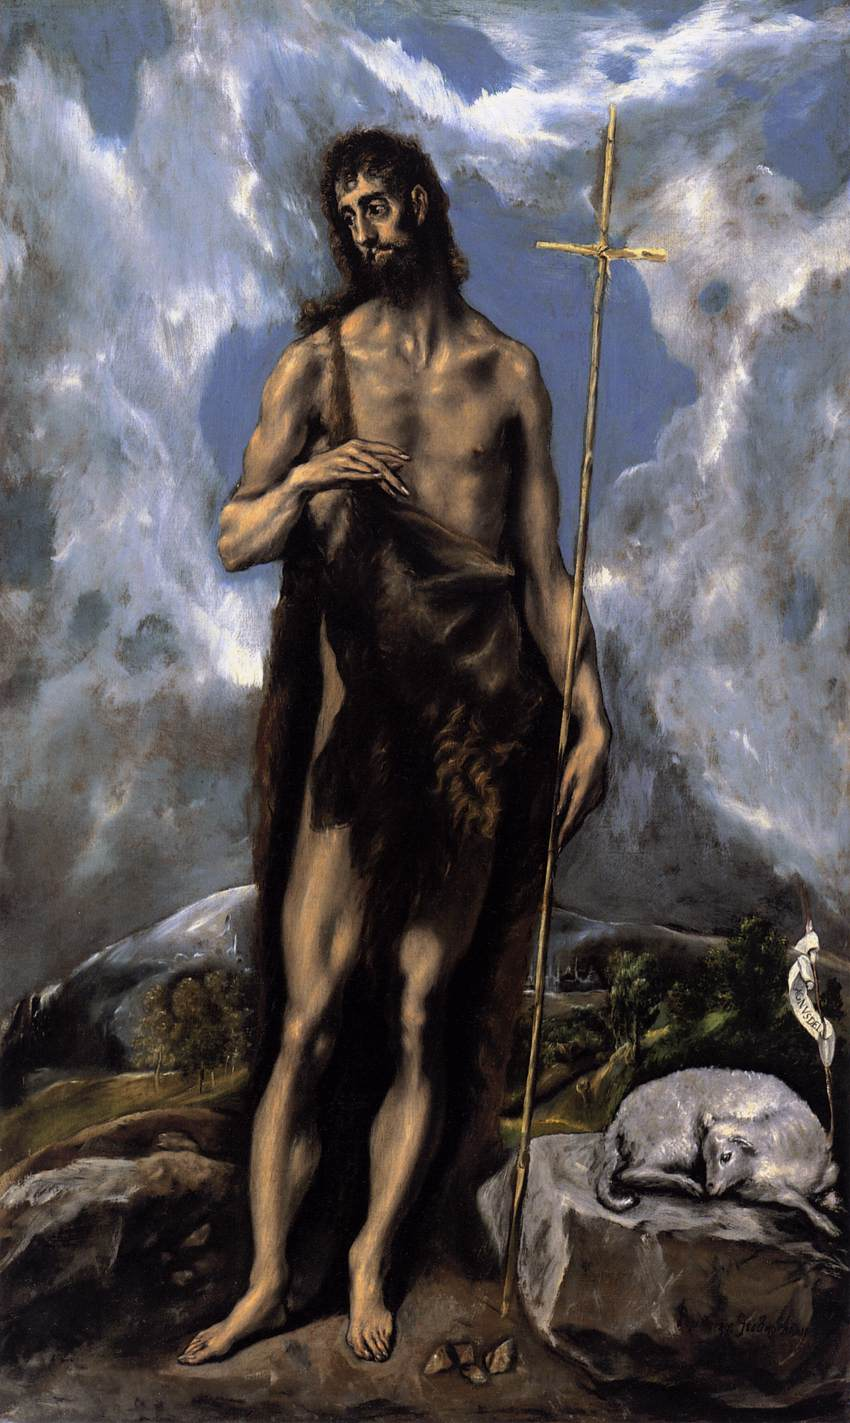 St. John the Baptist by El Greco.